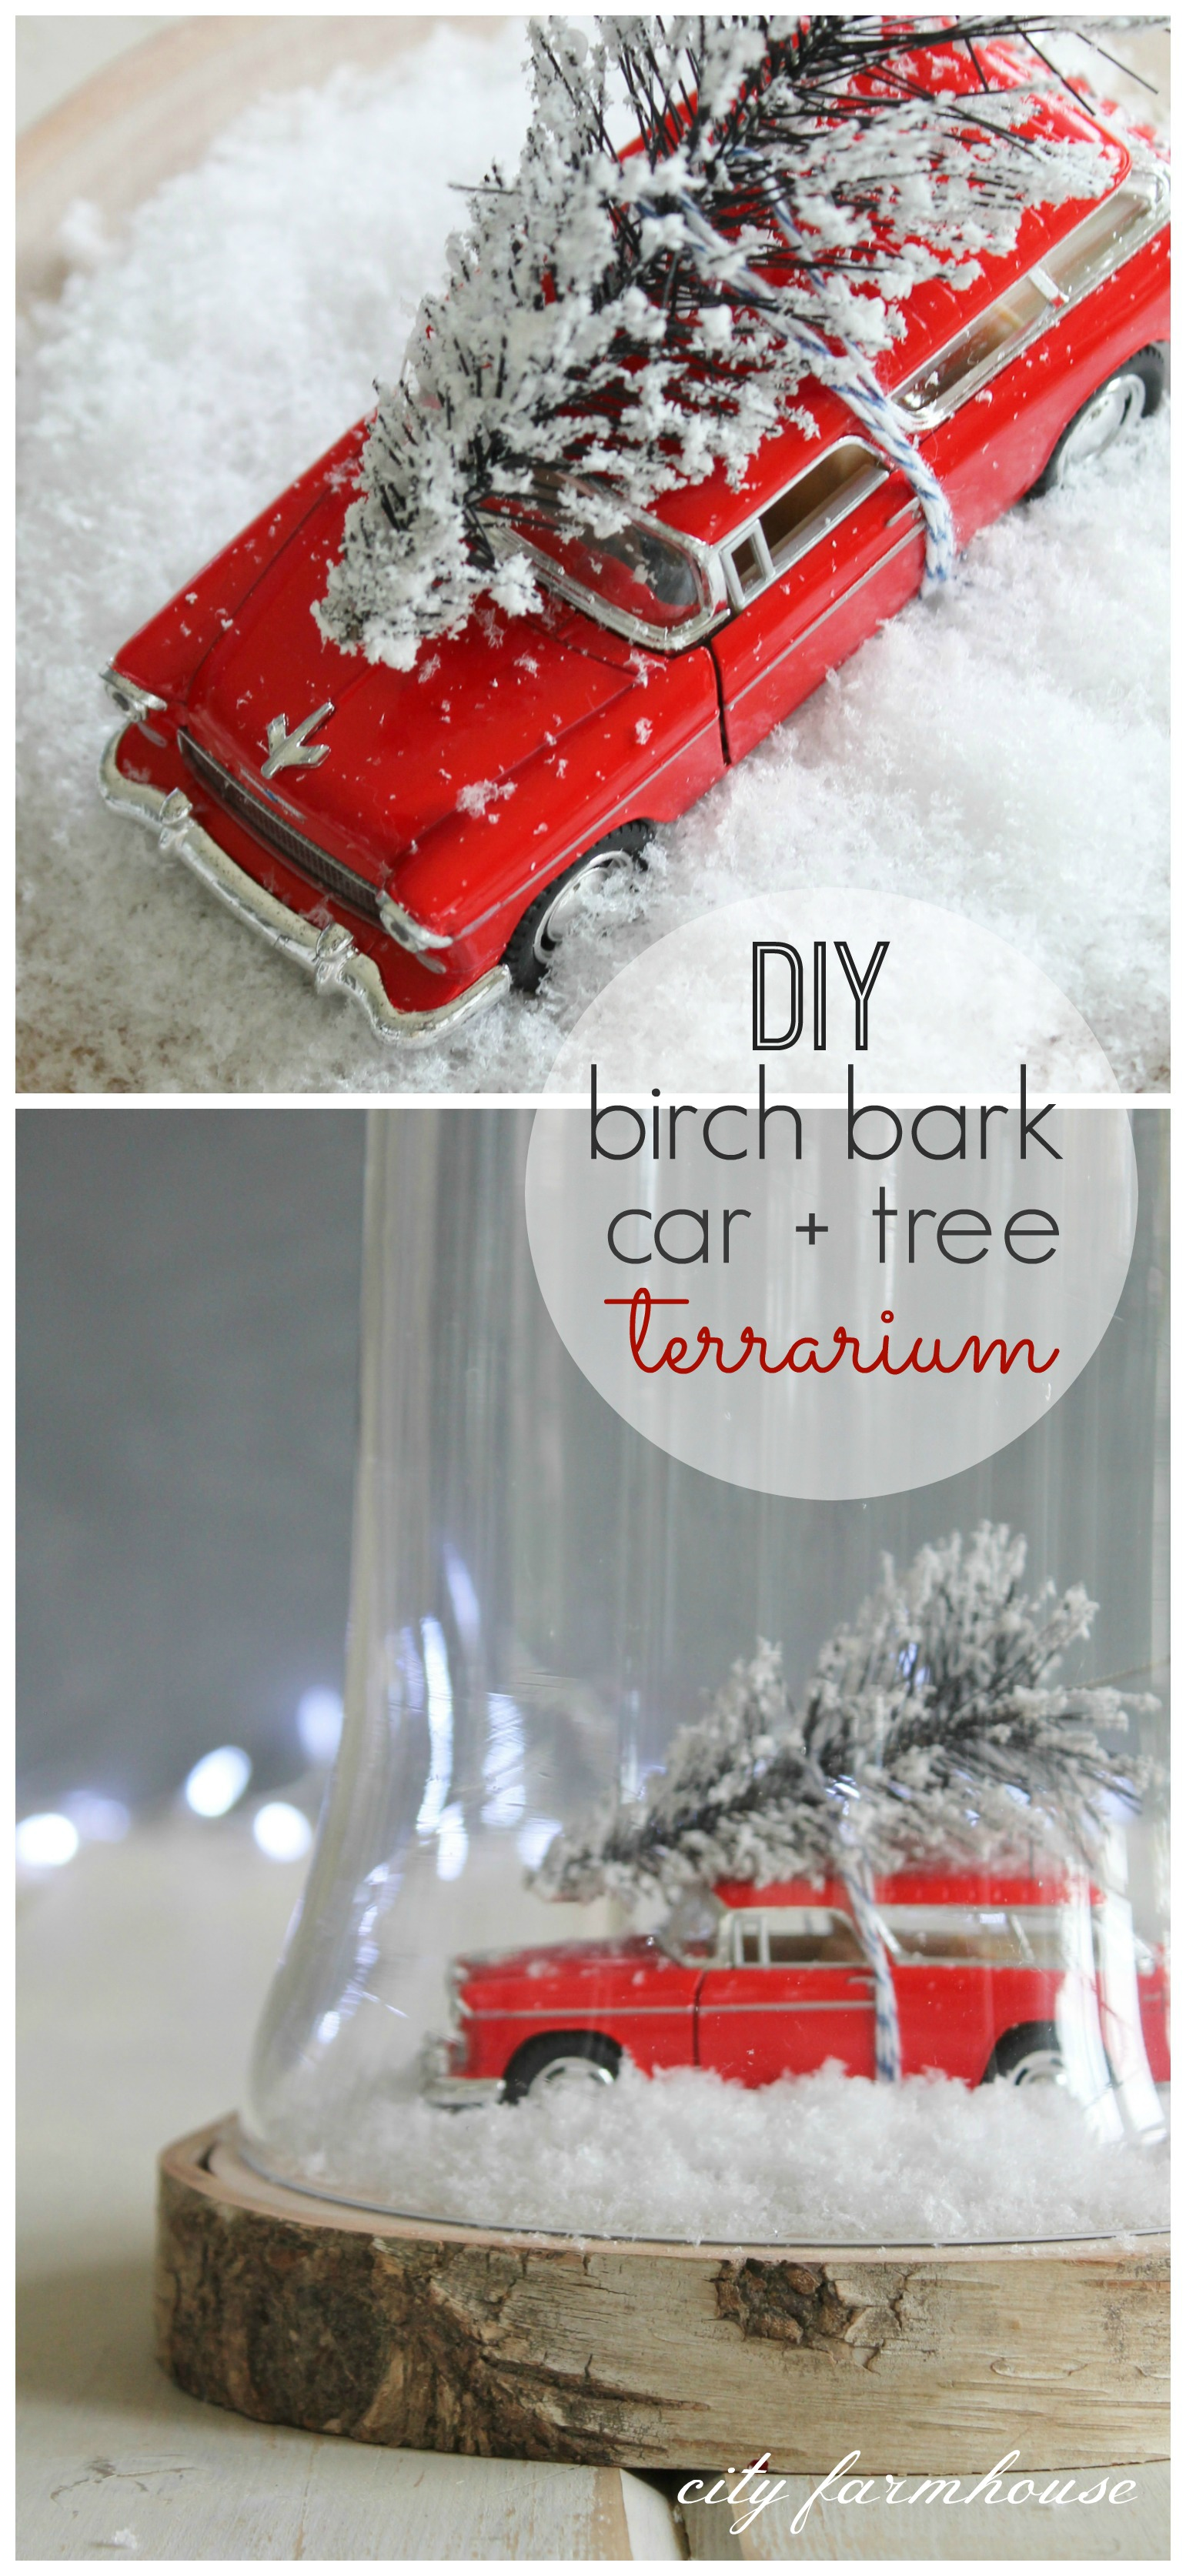 DIY Birch Bark Car + Tree Terrarium - City Farmhouse